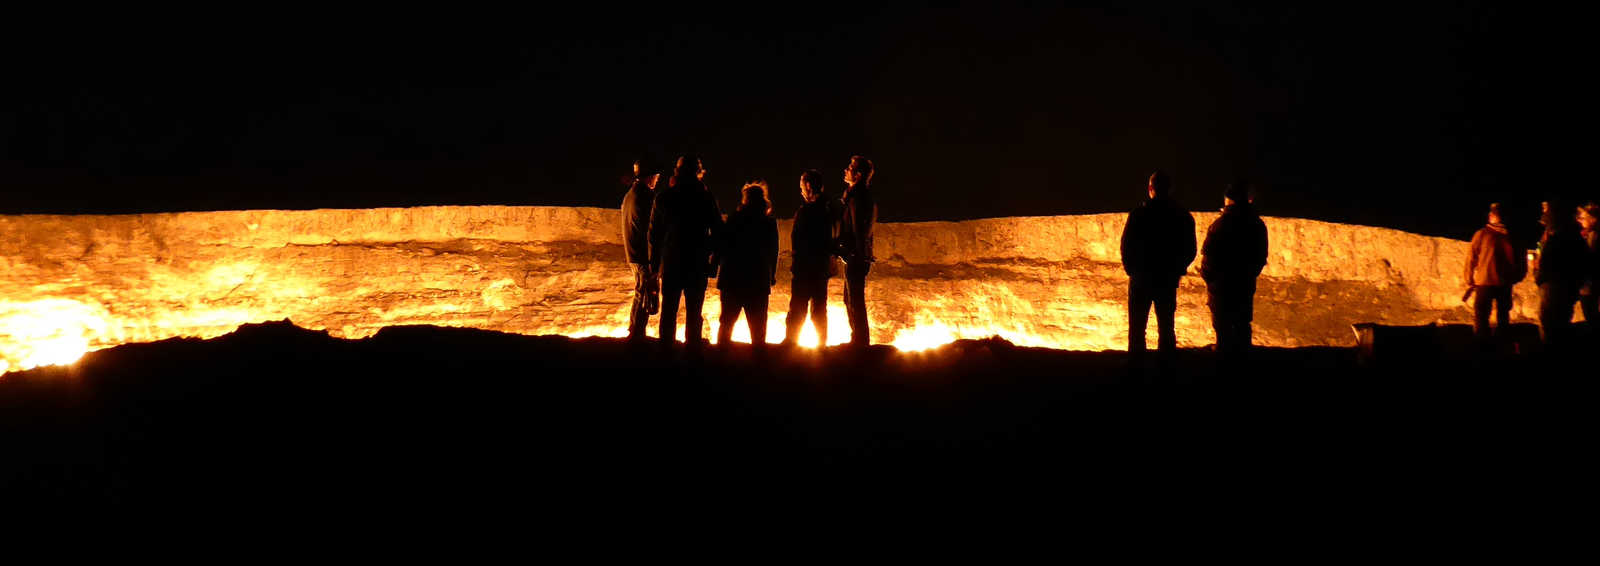 Darvaza burning gas crater - the Door to Hell